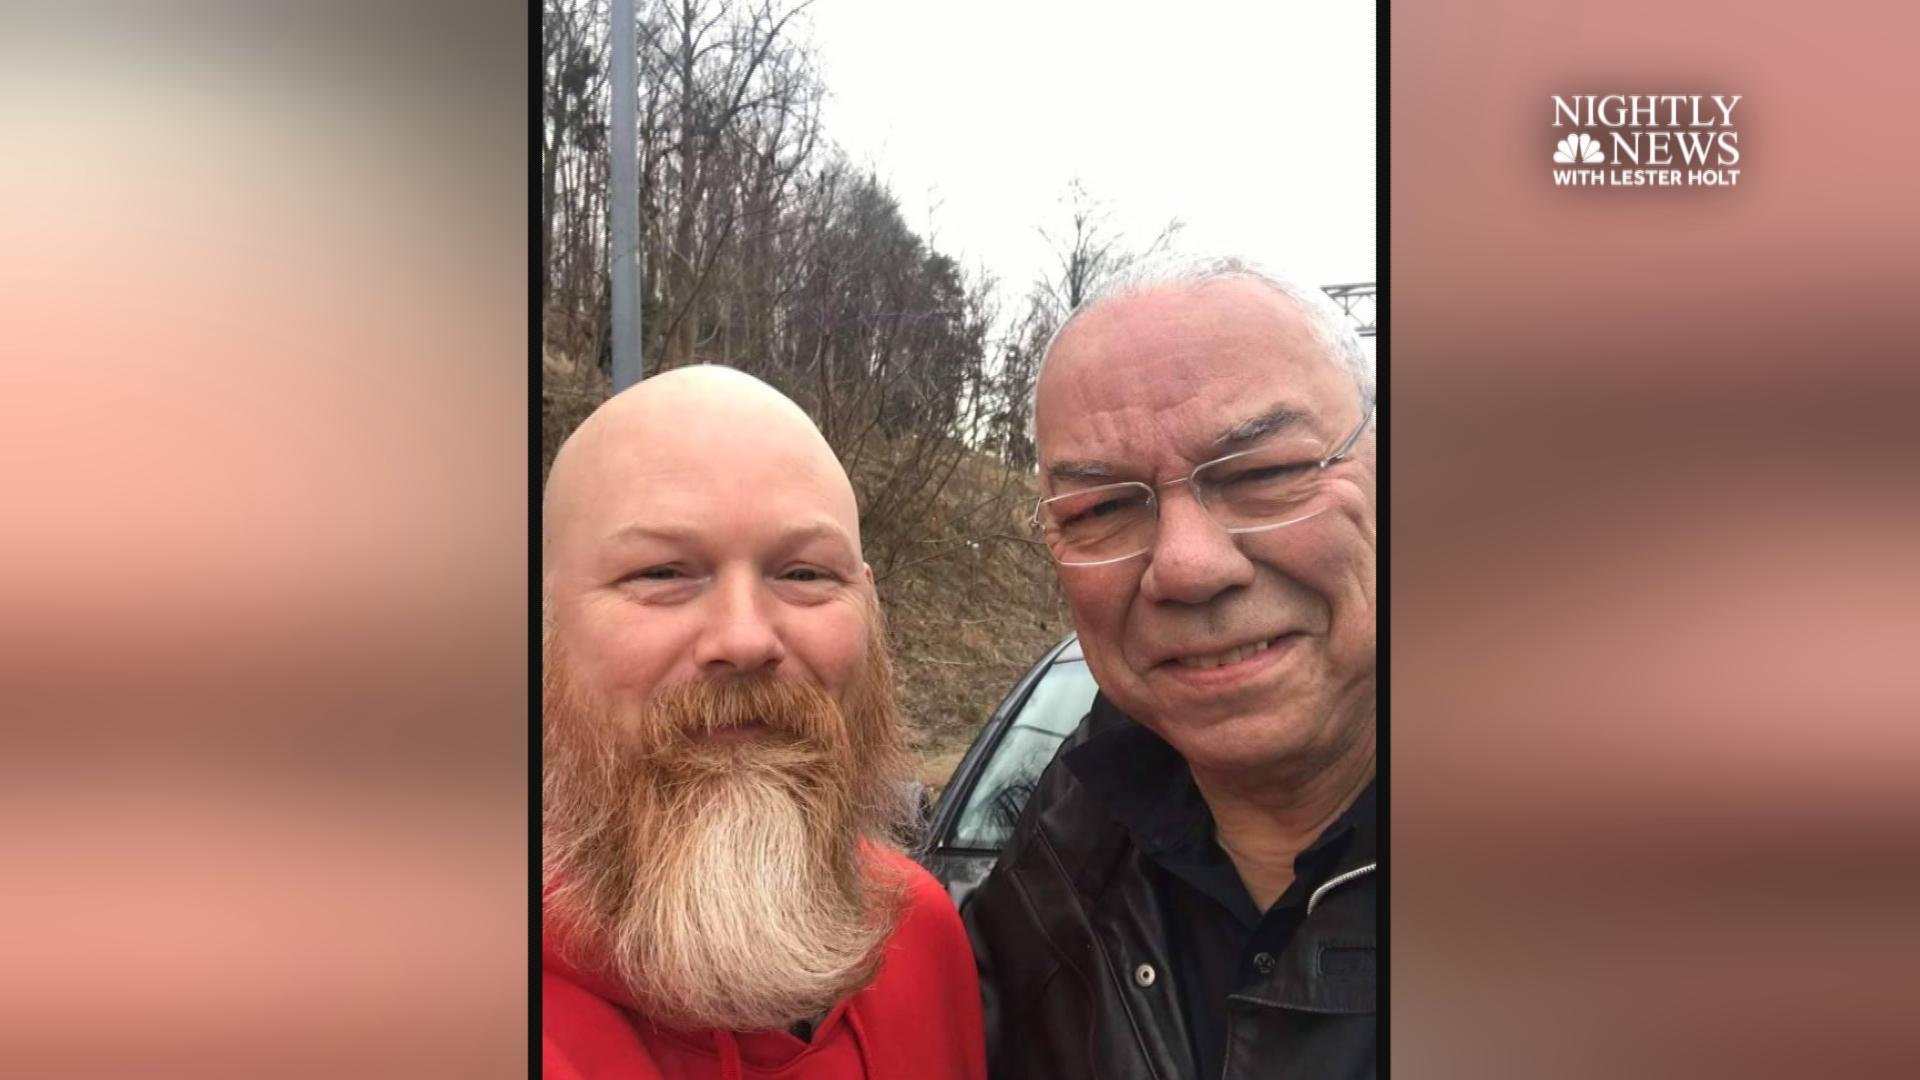 Colin Powell, veteran who stopped to help reflect on chance meeting